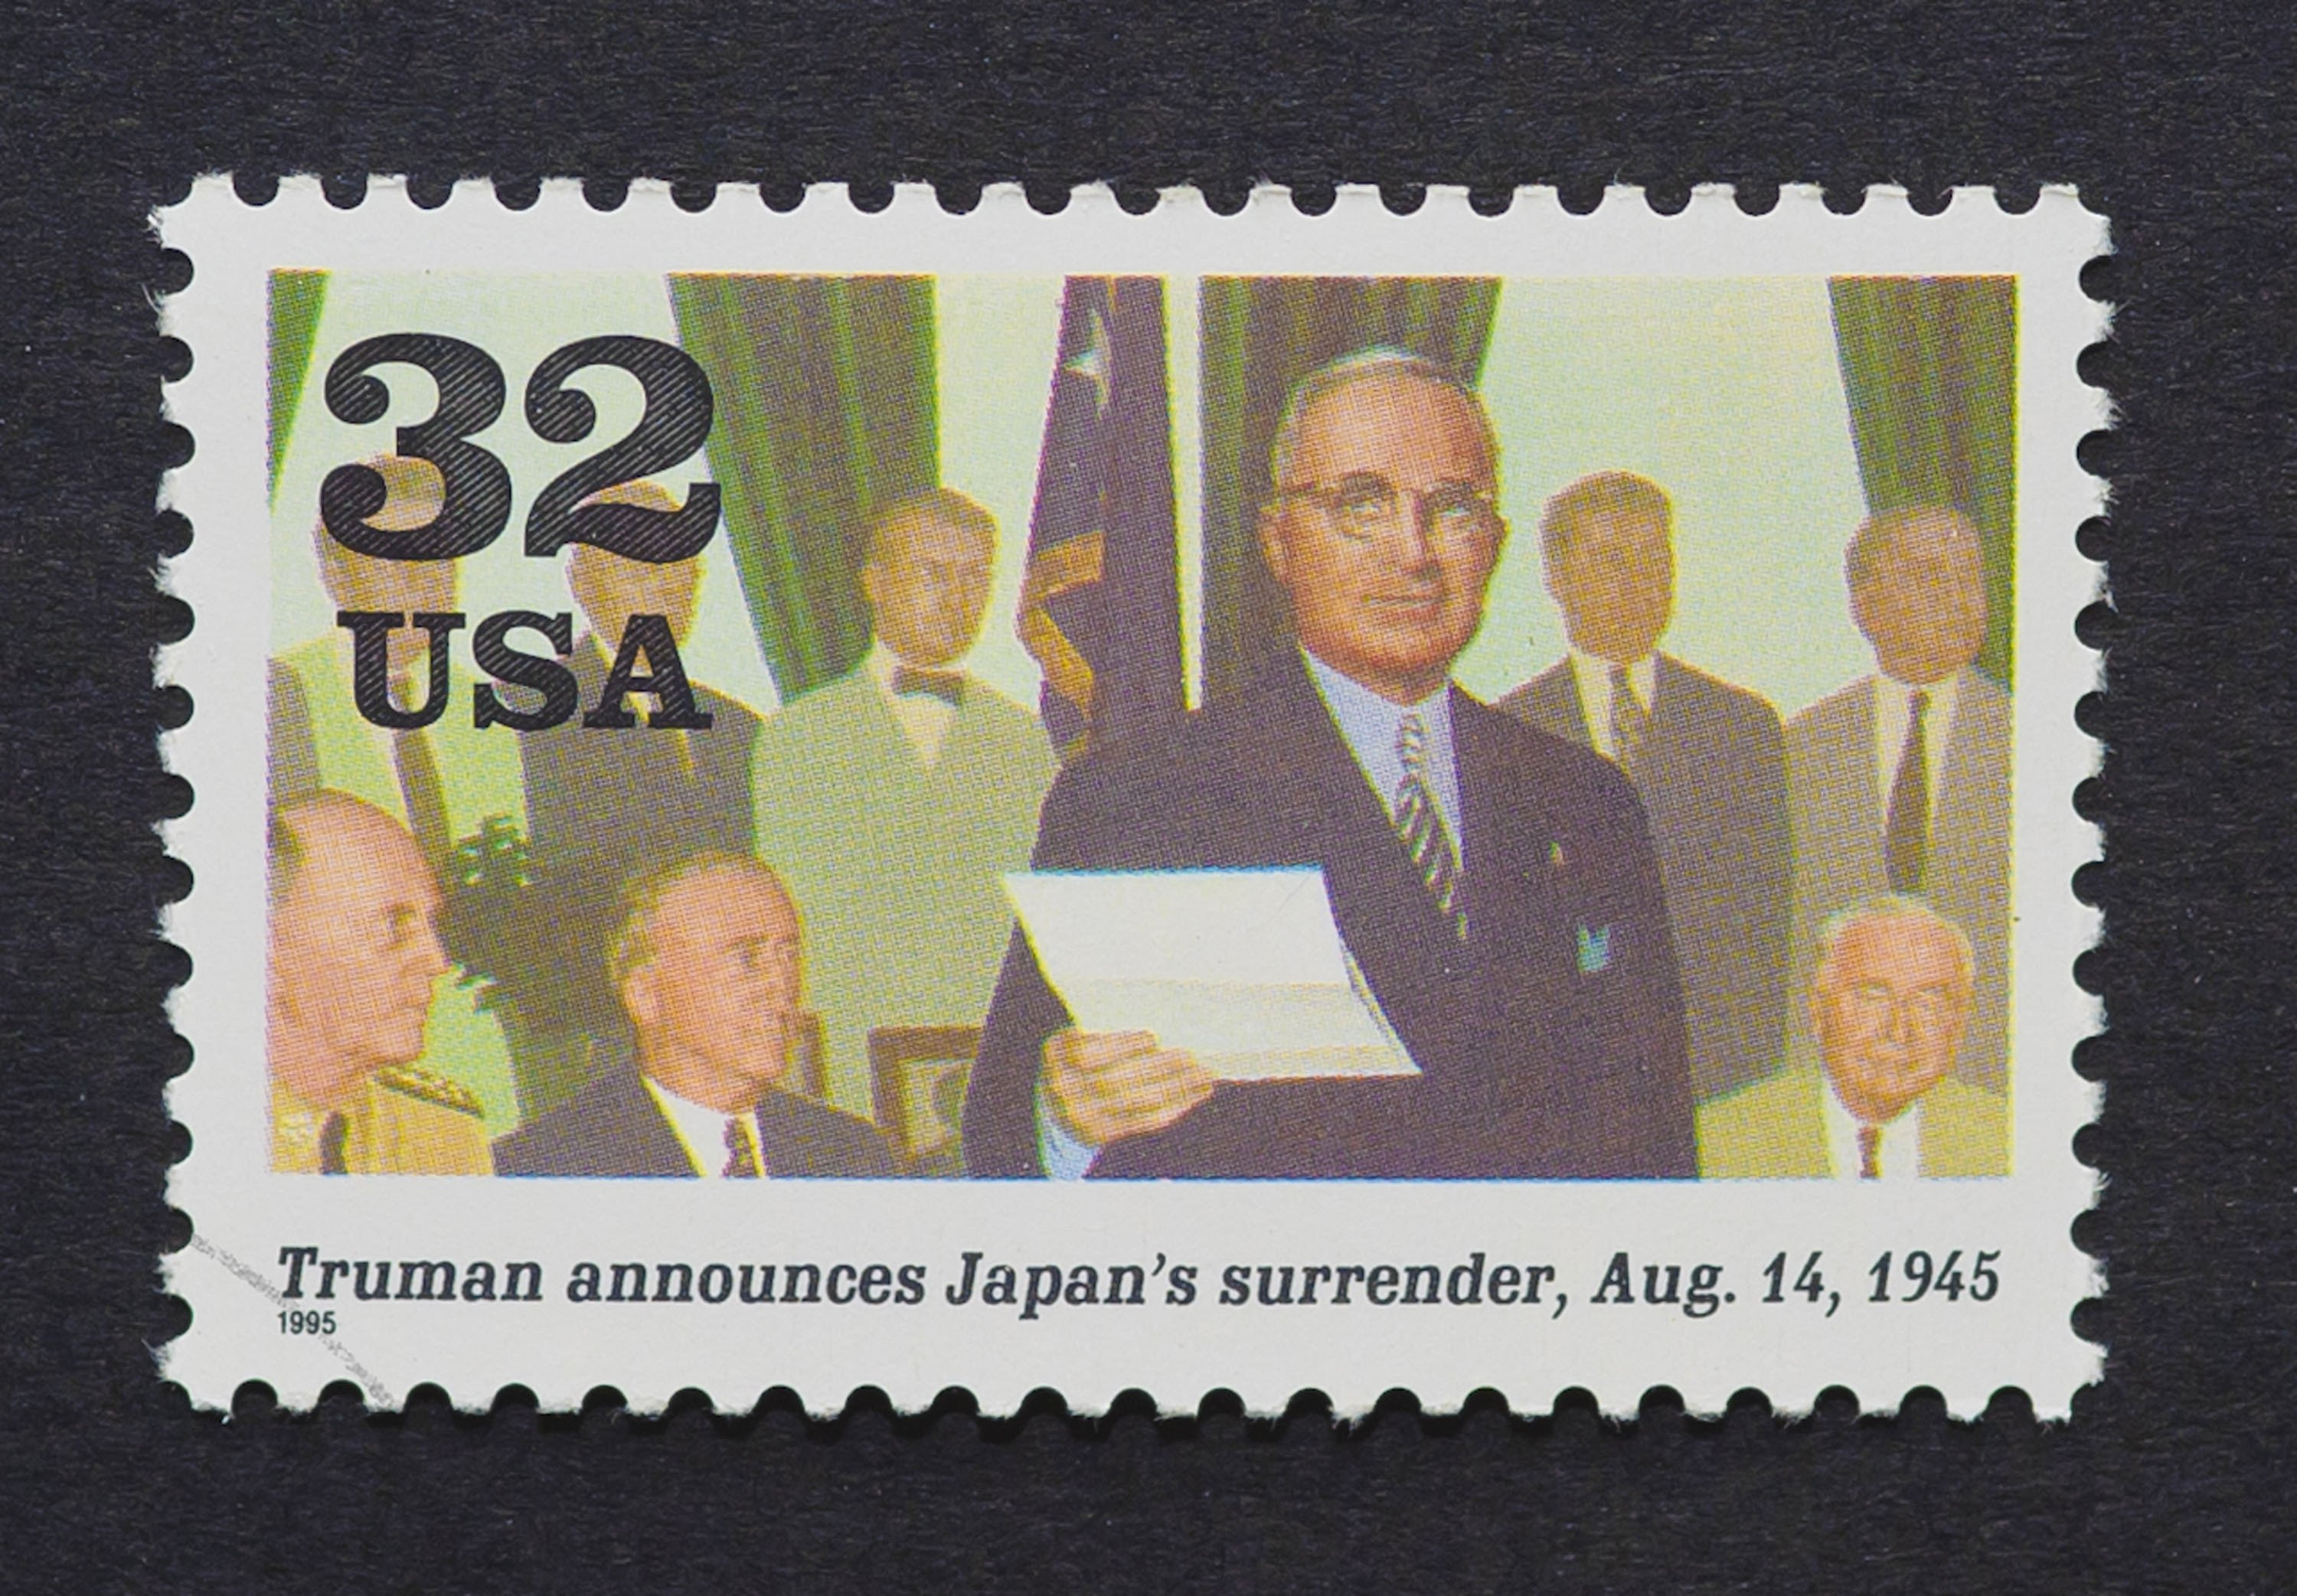 A U.S. postage stamp showing an image of President Harry Truman announcing Japan's surrender in the Second World War, circa 1995. (Shutterstock Photo)